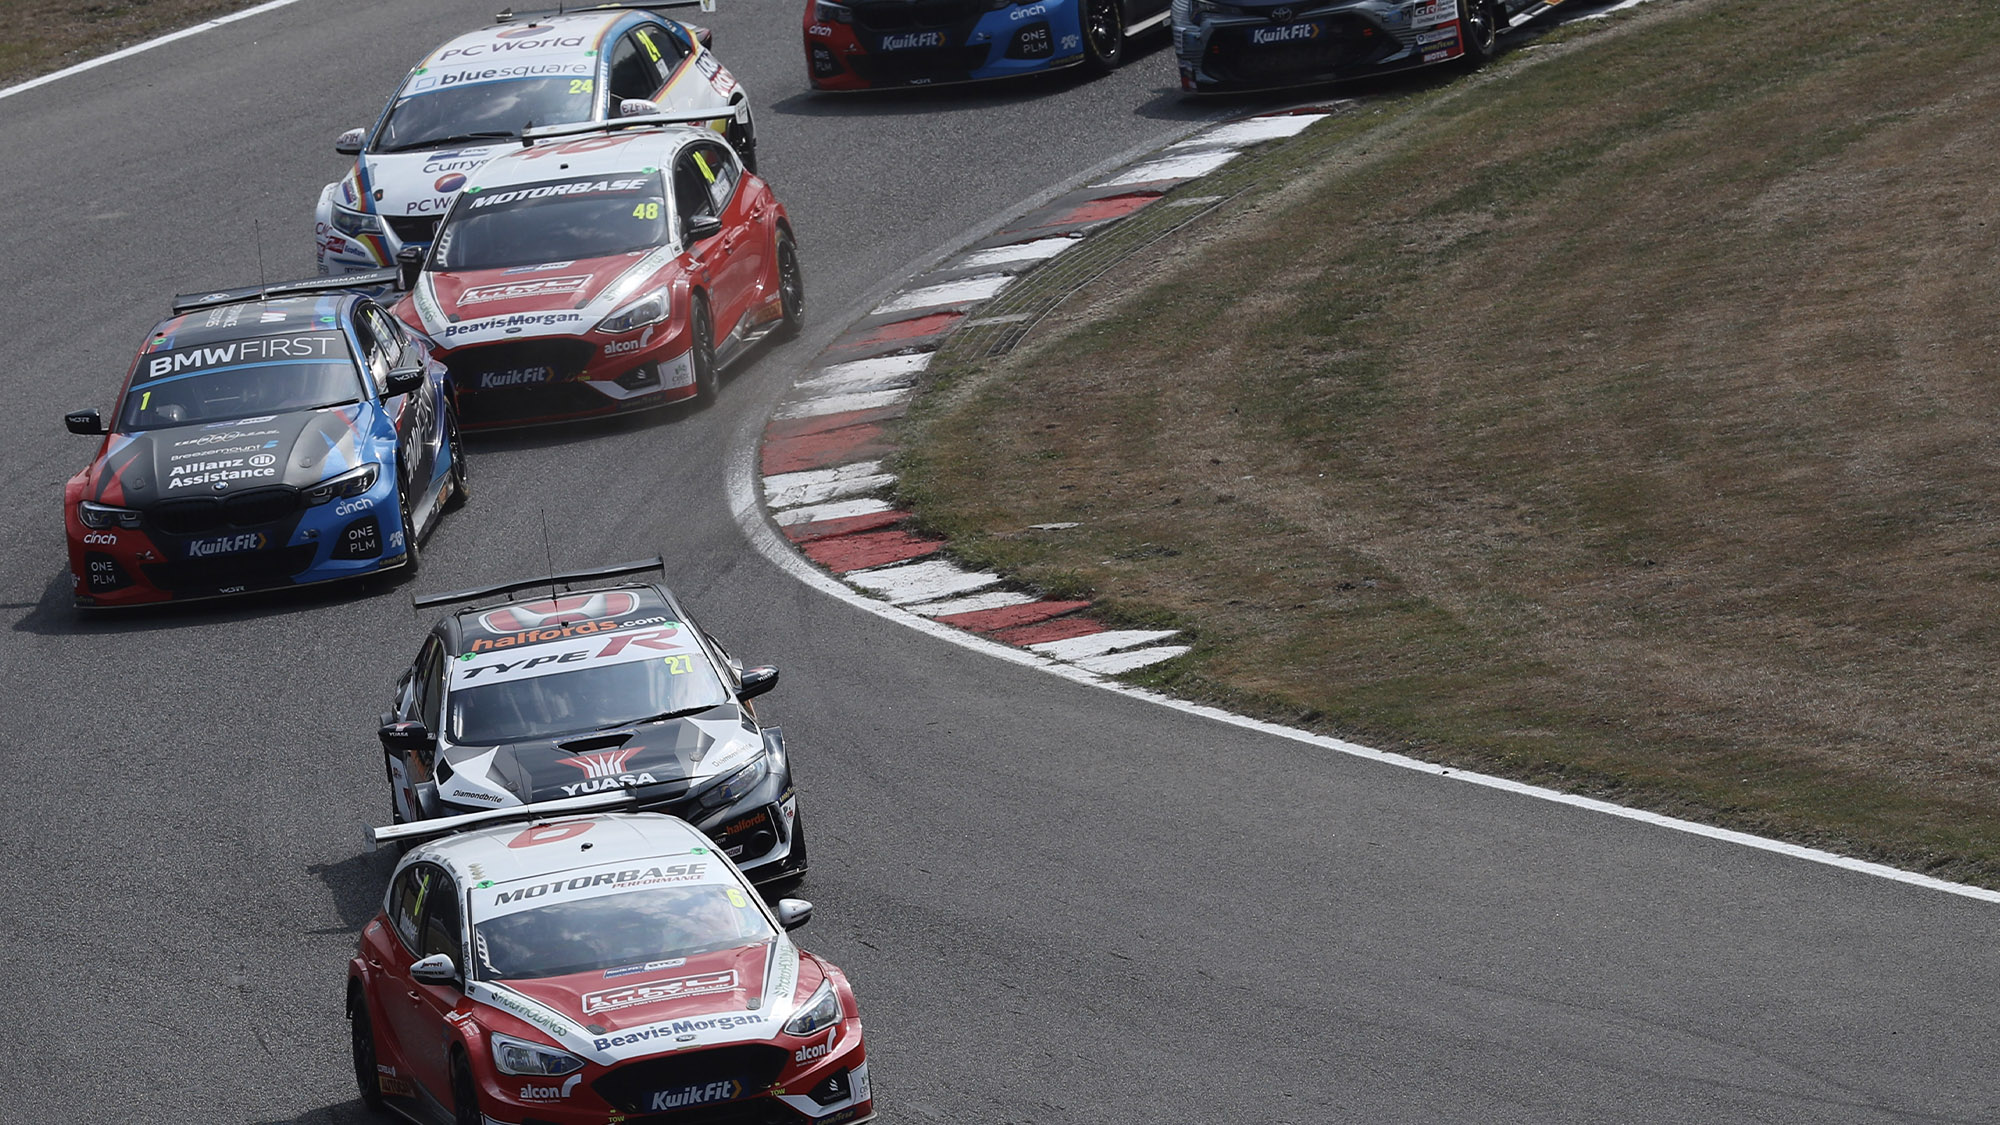 Turkington shines at Brands Hatch as luck runs out for Hondas: 2020 BTCC rounds 4,5 & 6